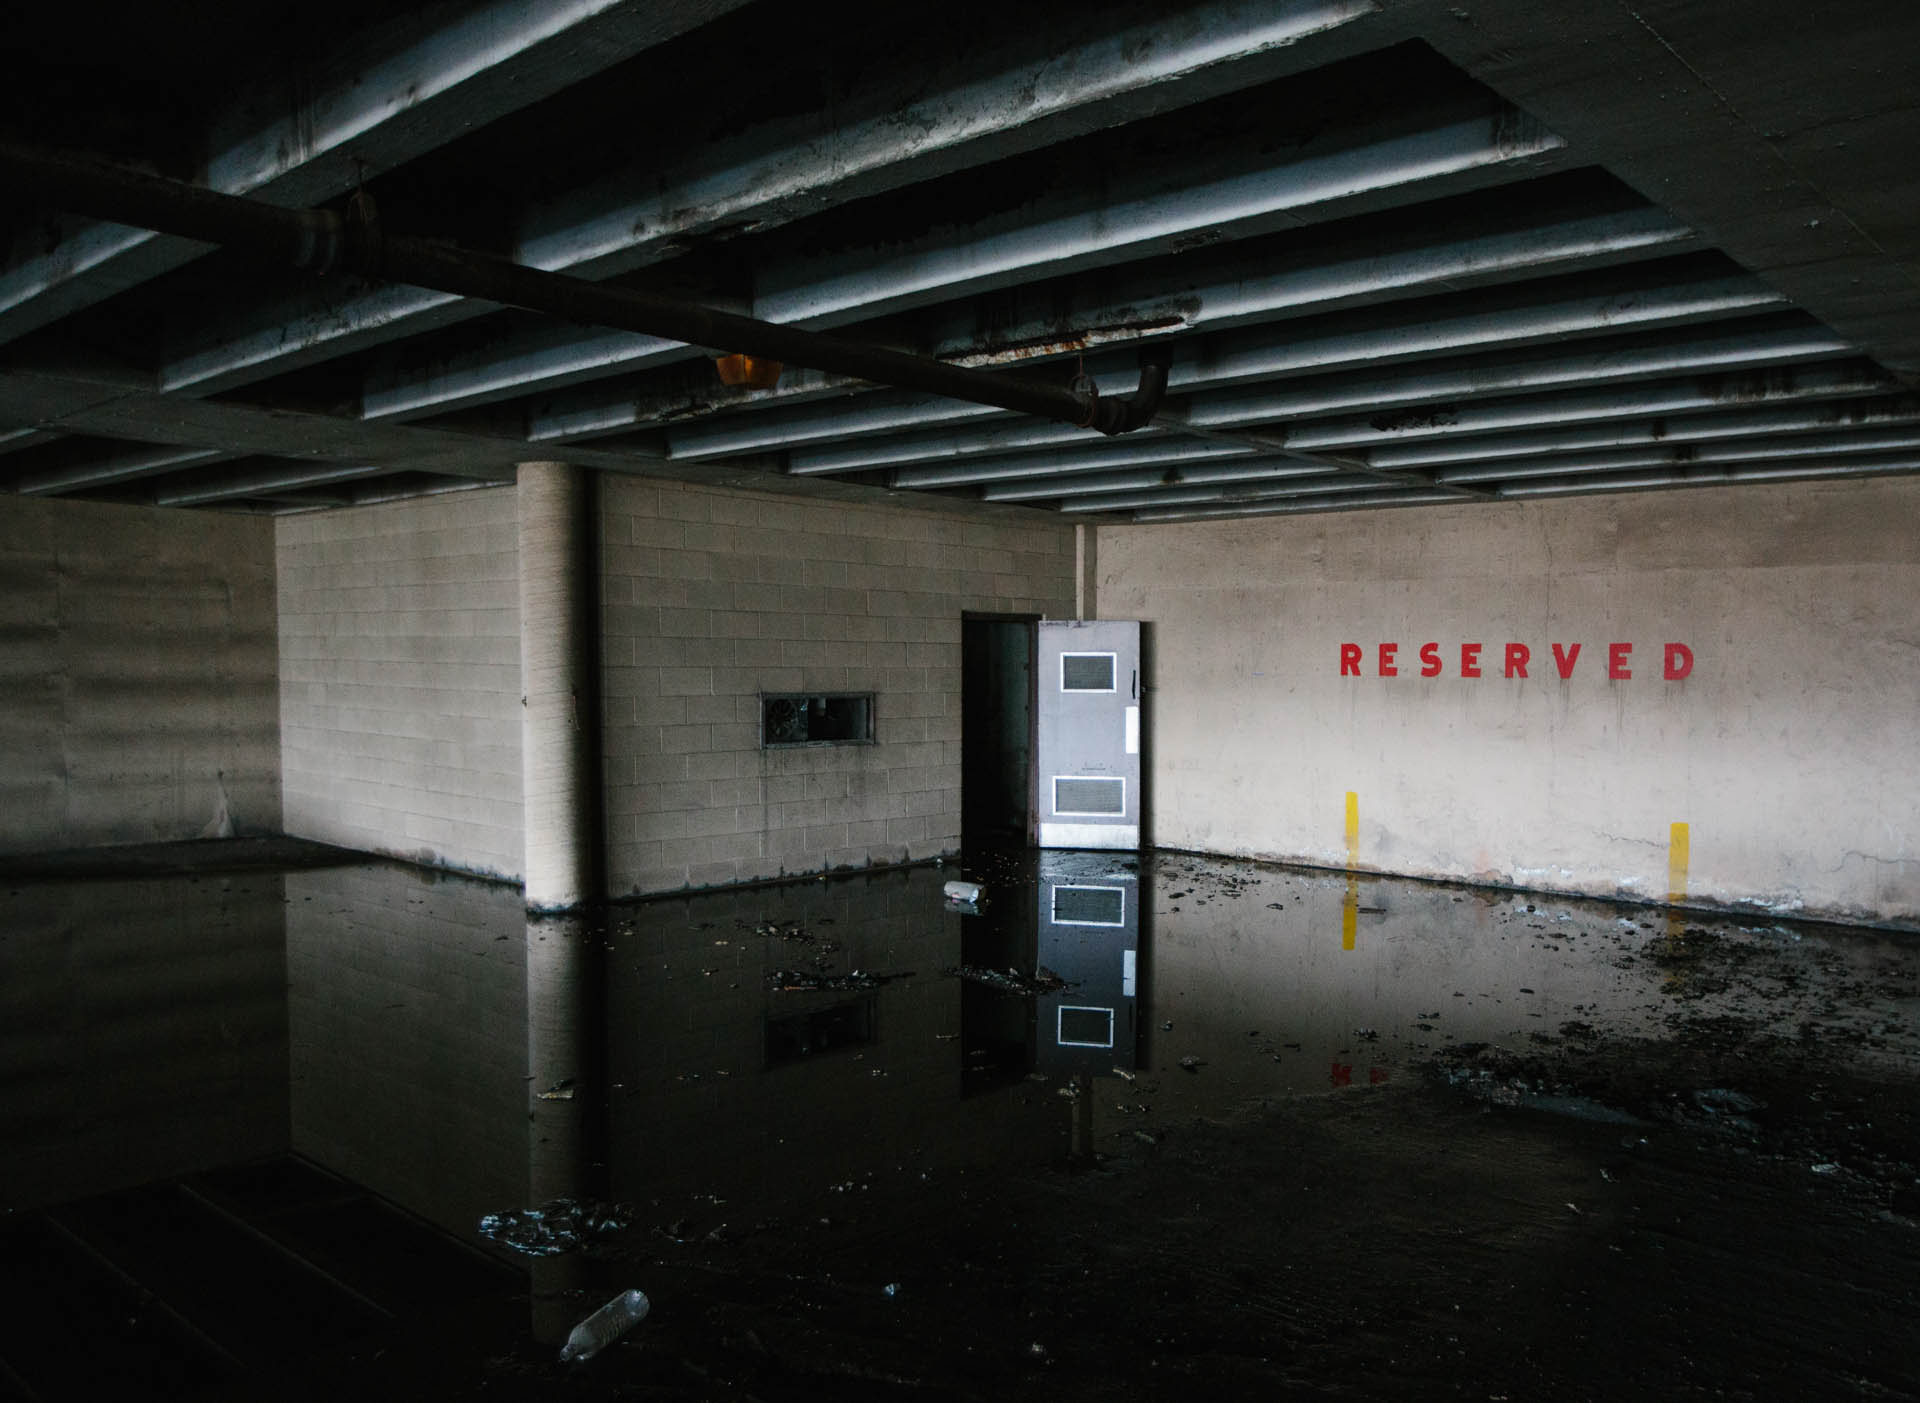 reserved-torn-down-sheraton-hotel-gary-in